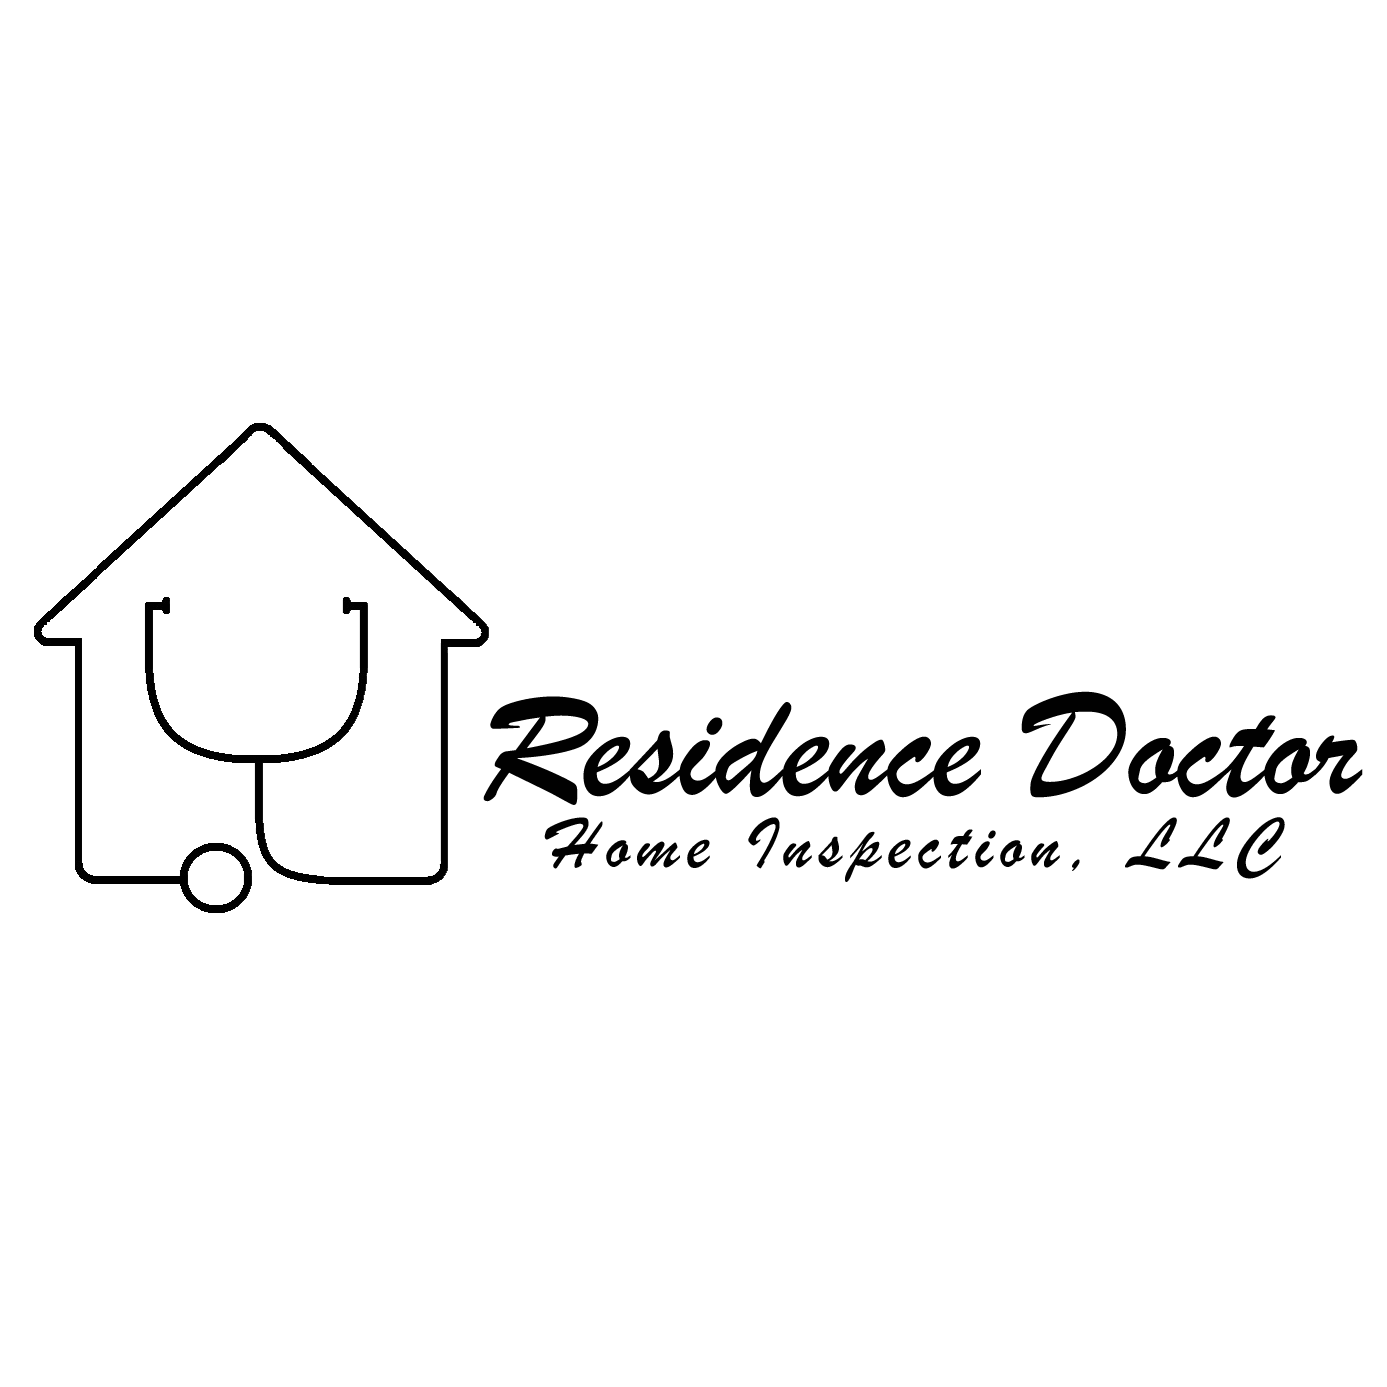 Residence Doctor Home Inspection, LLC